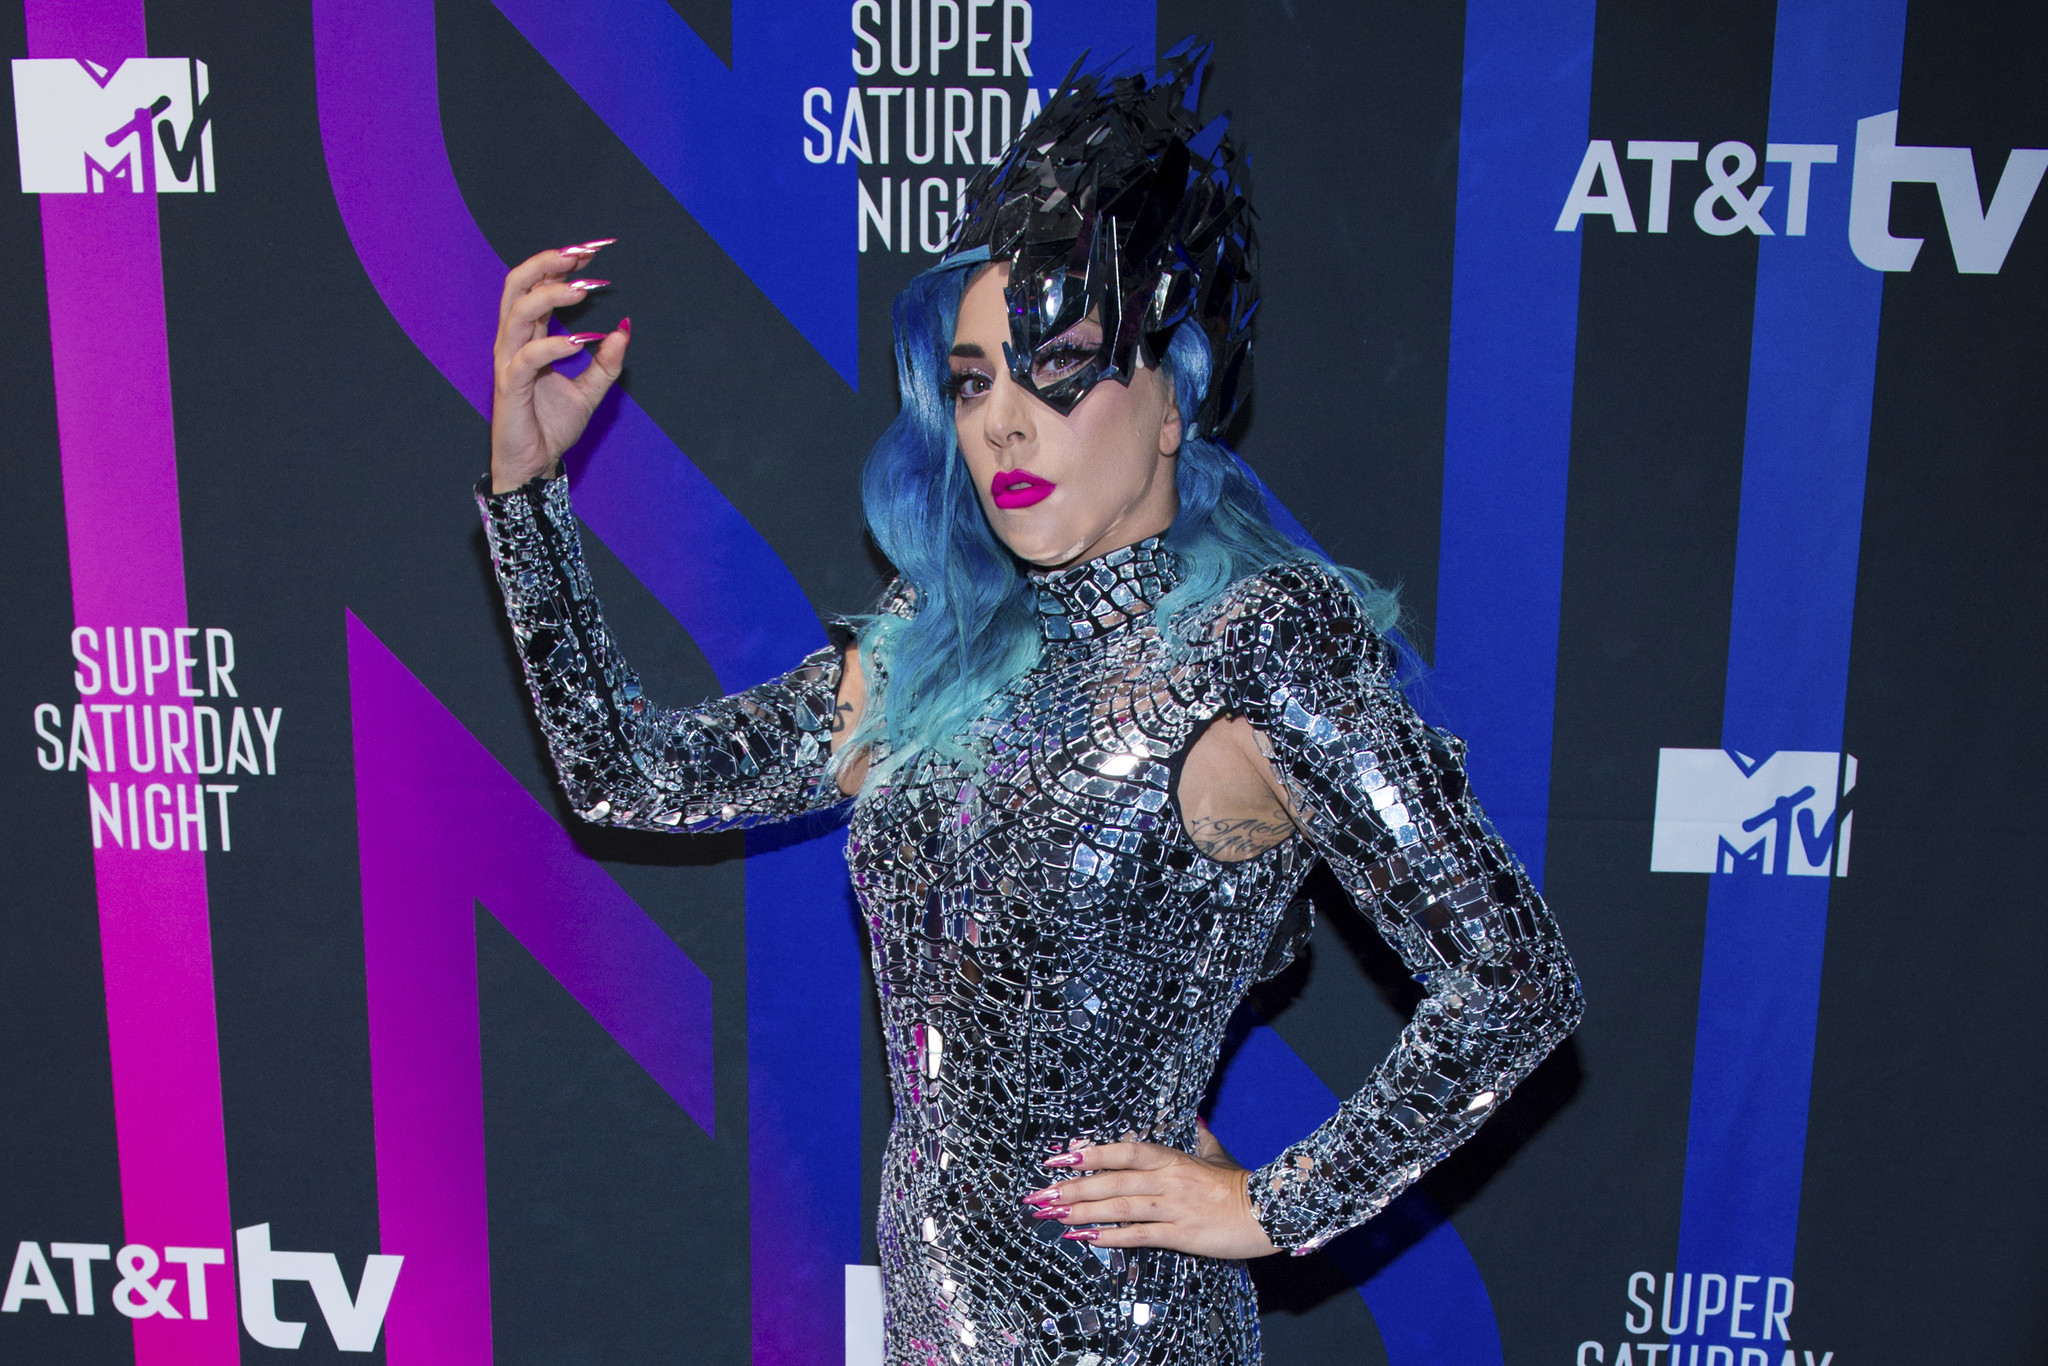 Lady Gaga 'so sorry' to Jimmy Fallon after awkward interview mishap